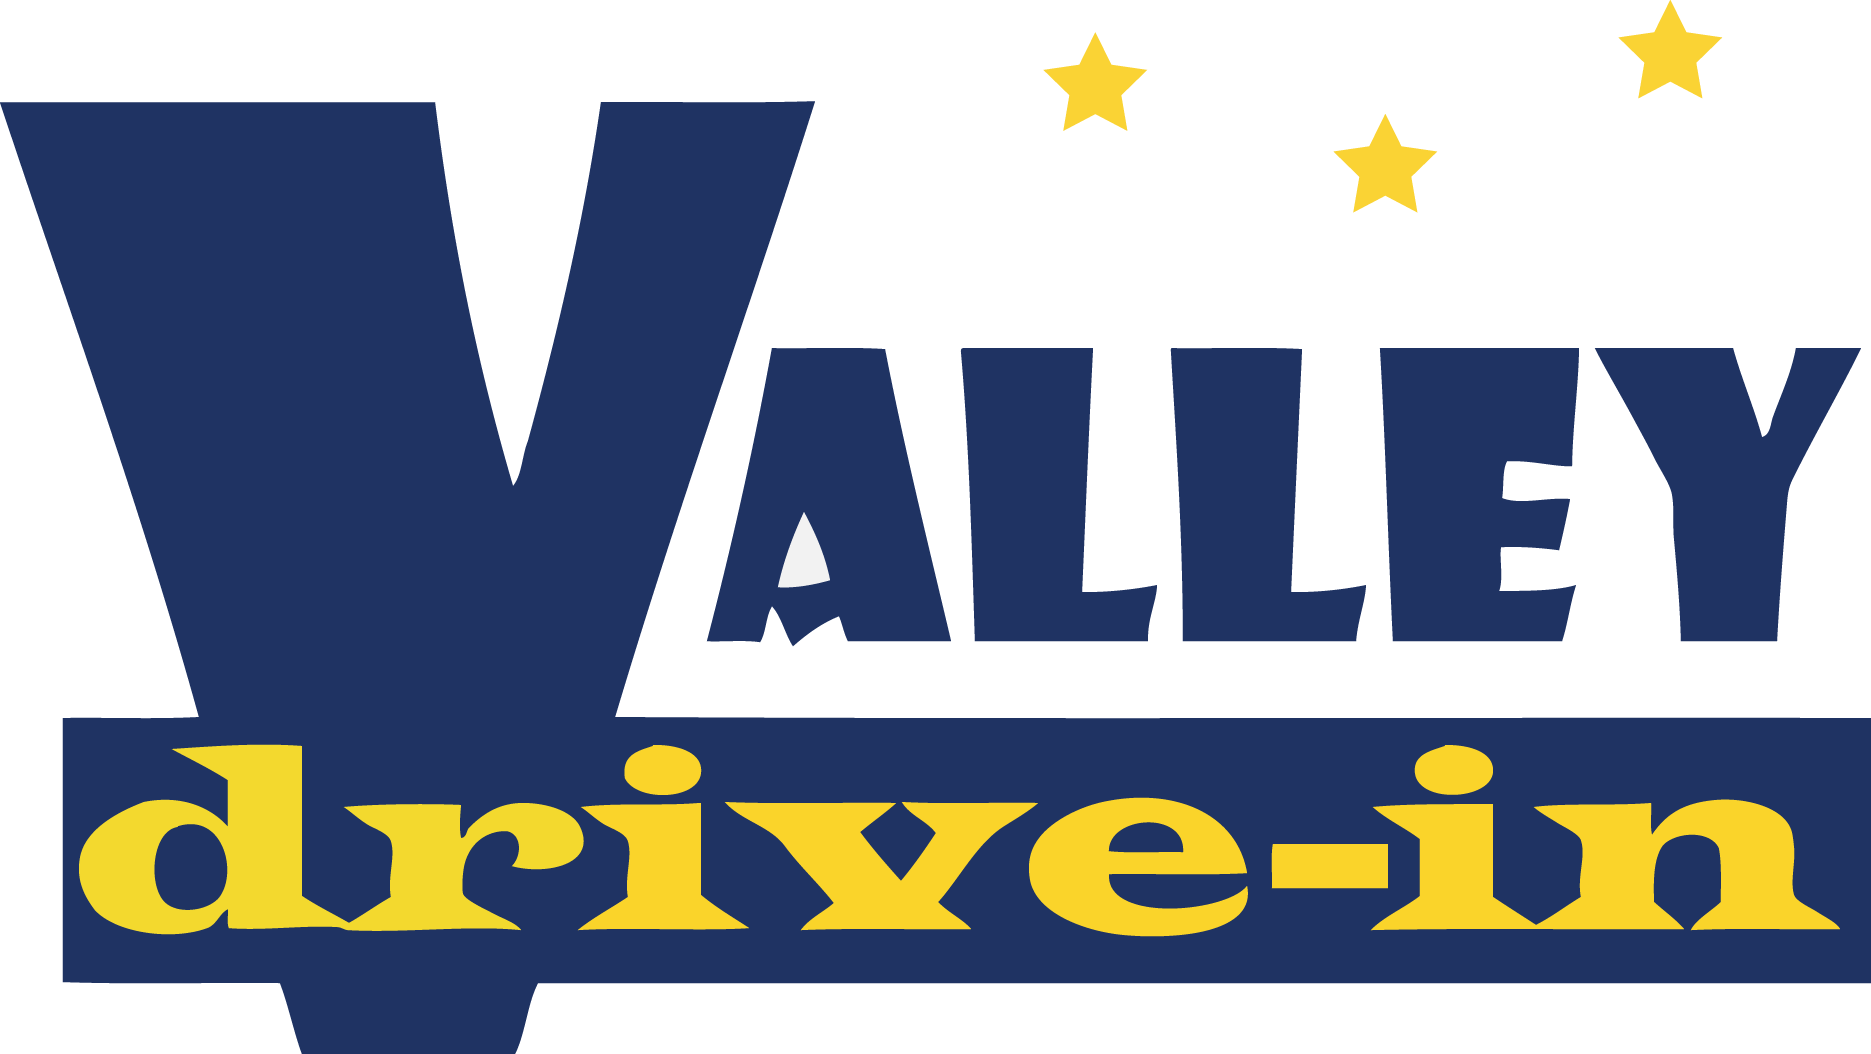 Valley Drive-In Theatre logo